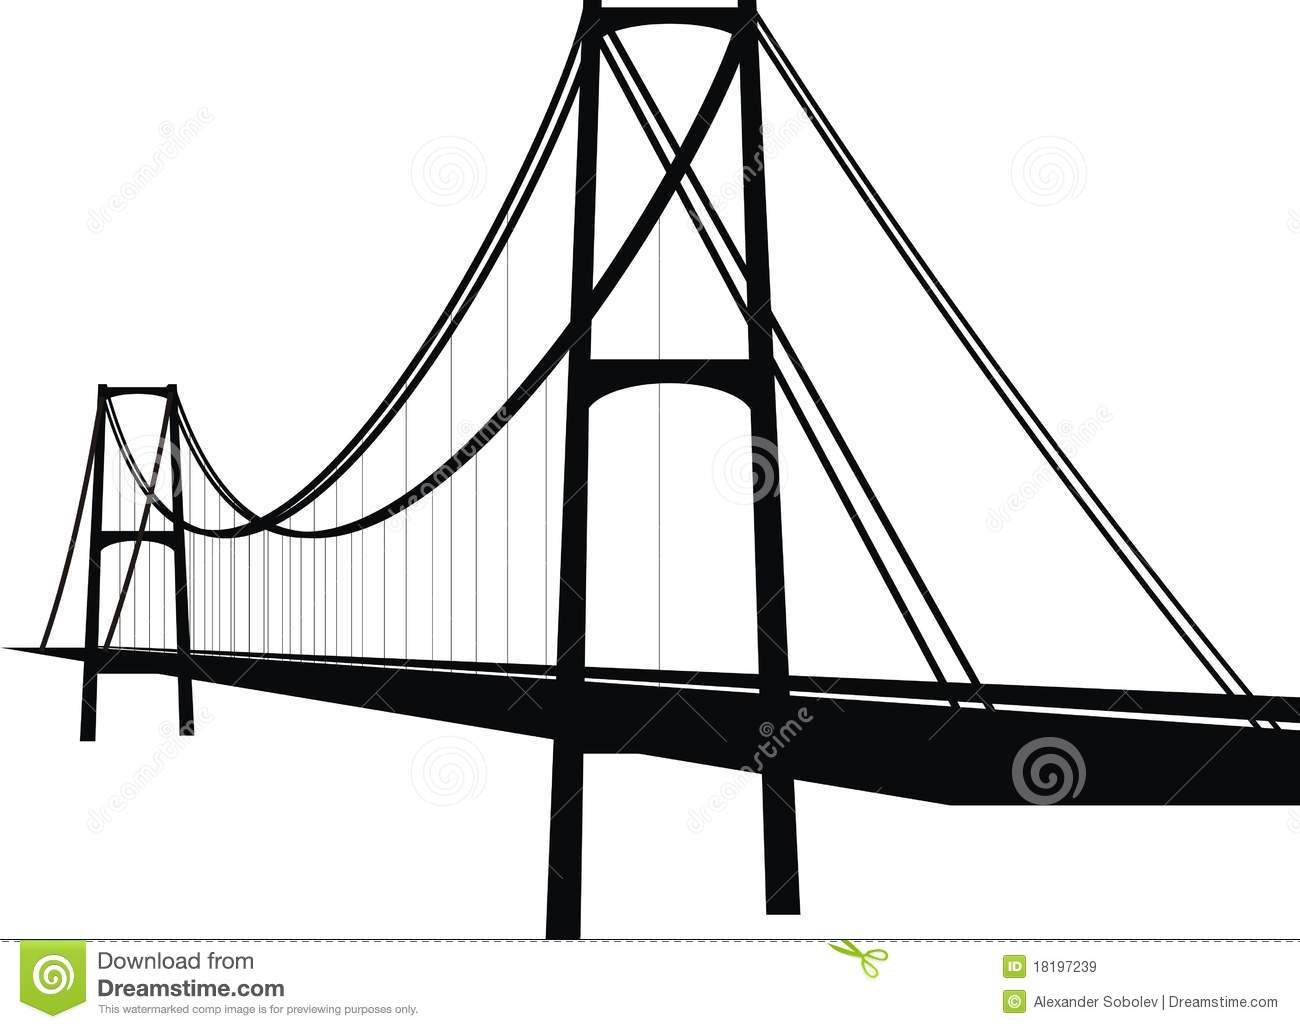 Product detail together with Digital Portfolio Exploded Axonometric Diagrams Research moreover Royalty Free Stock Images Suspension Cable Bridge Image18197239 moreover The Middleton Elite as well Cleaning. on cable landscape